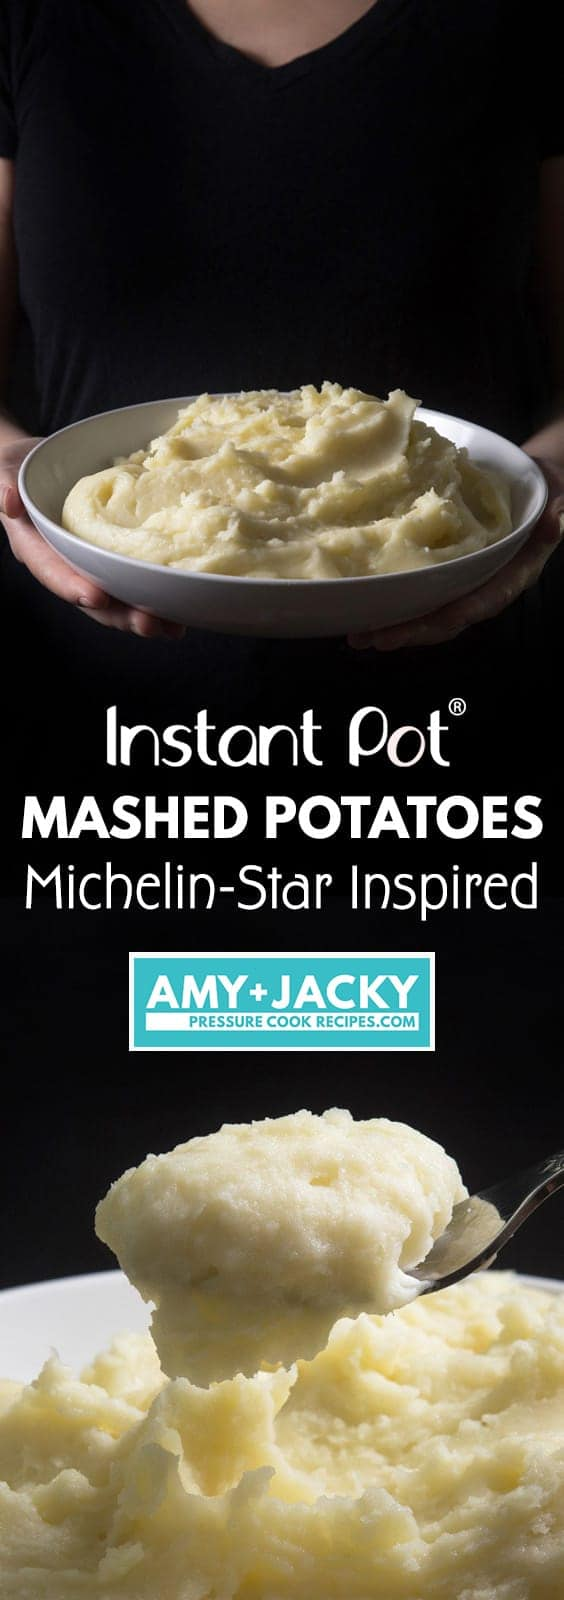 Instant Pot Mashed Potatoes | Instapot Mashed Potatoes | Pressure Cooker Mashed Potatoes | Instant Pot Potatoes | Pressure Cooker Potatoes | Instant Pot Recipes #instantpot #potatoes #recipes #easy #side